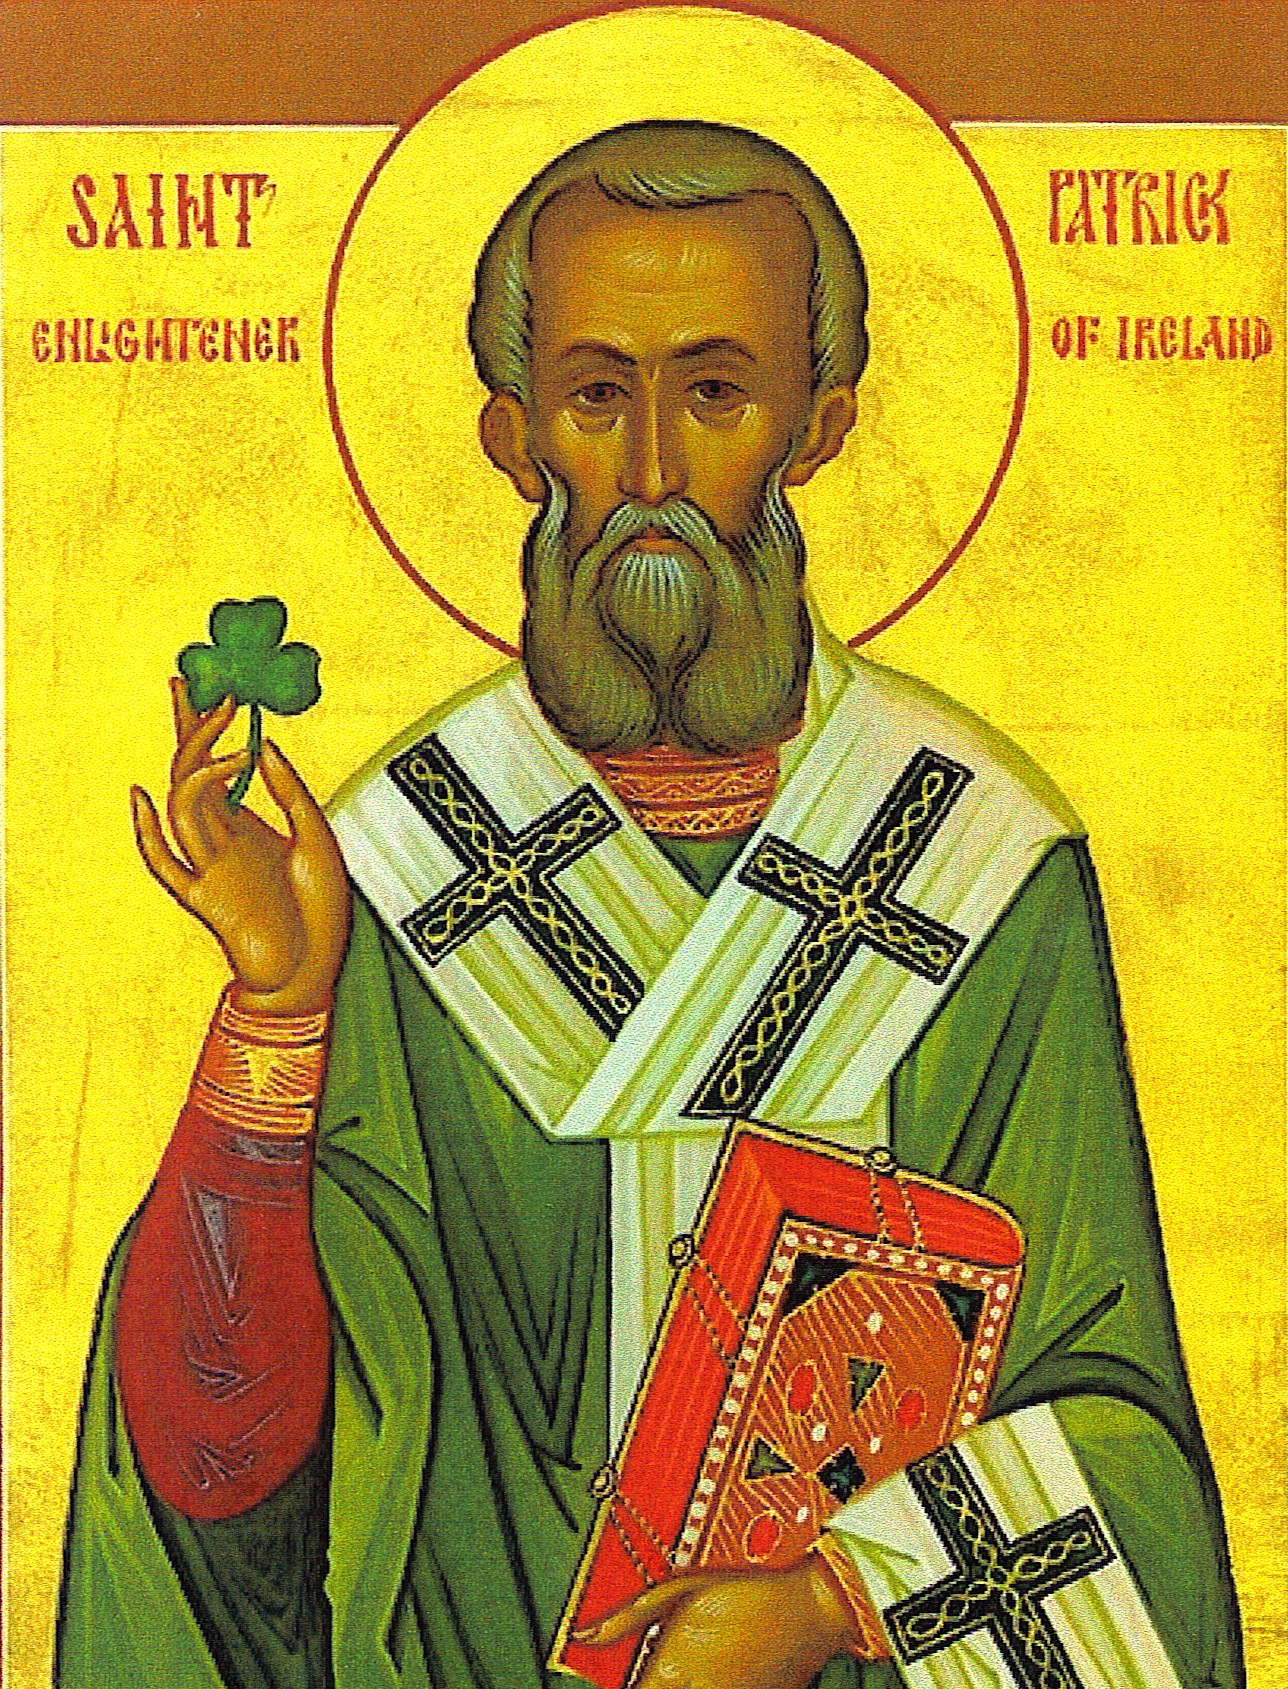 † Happy St. Patrick's Day